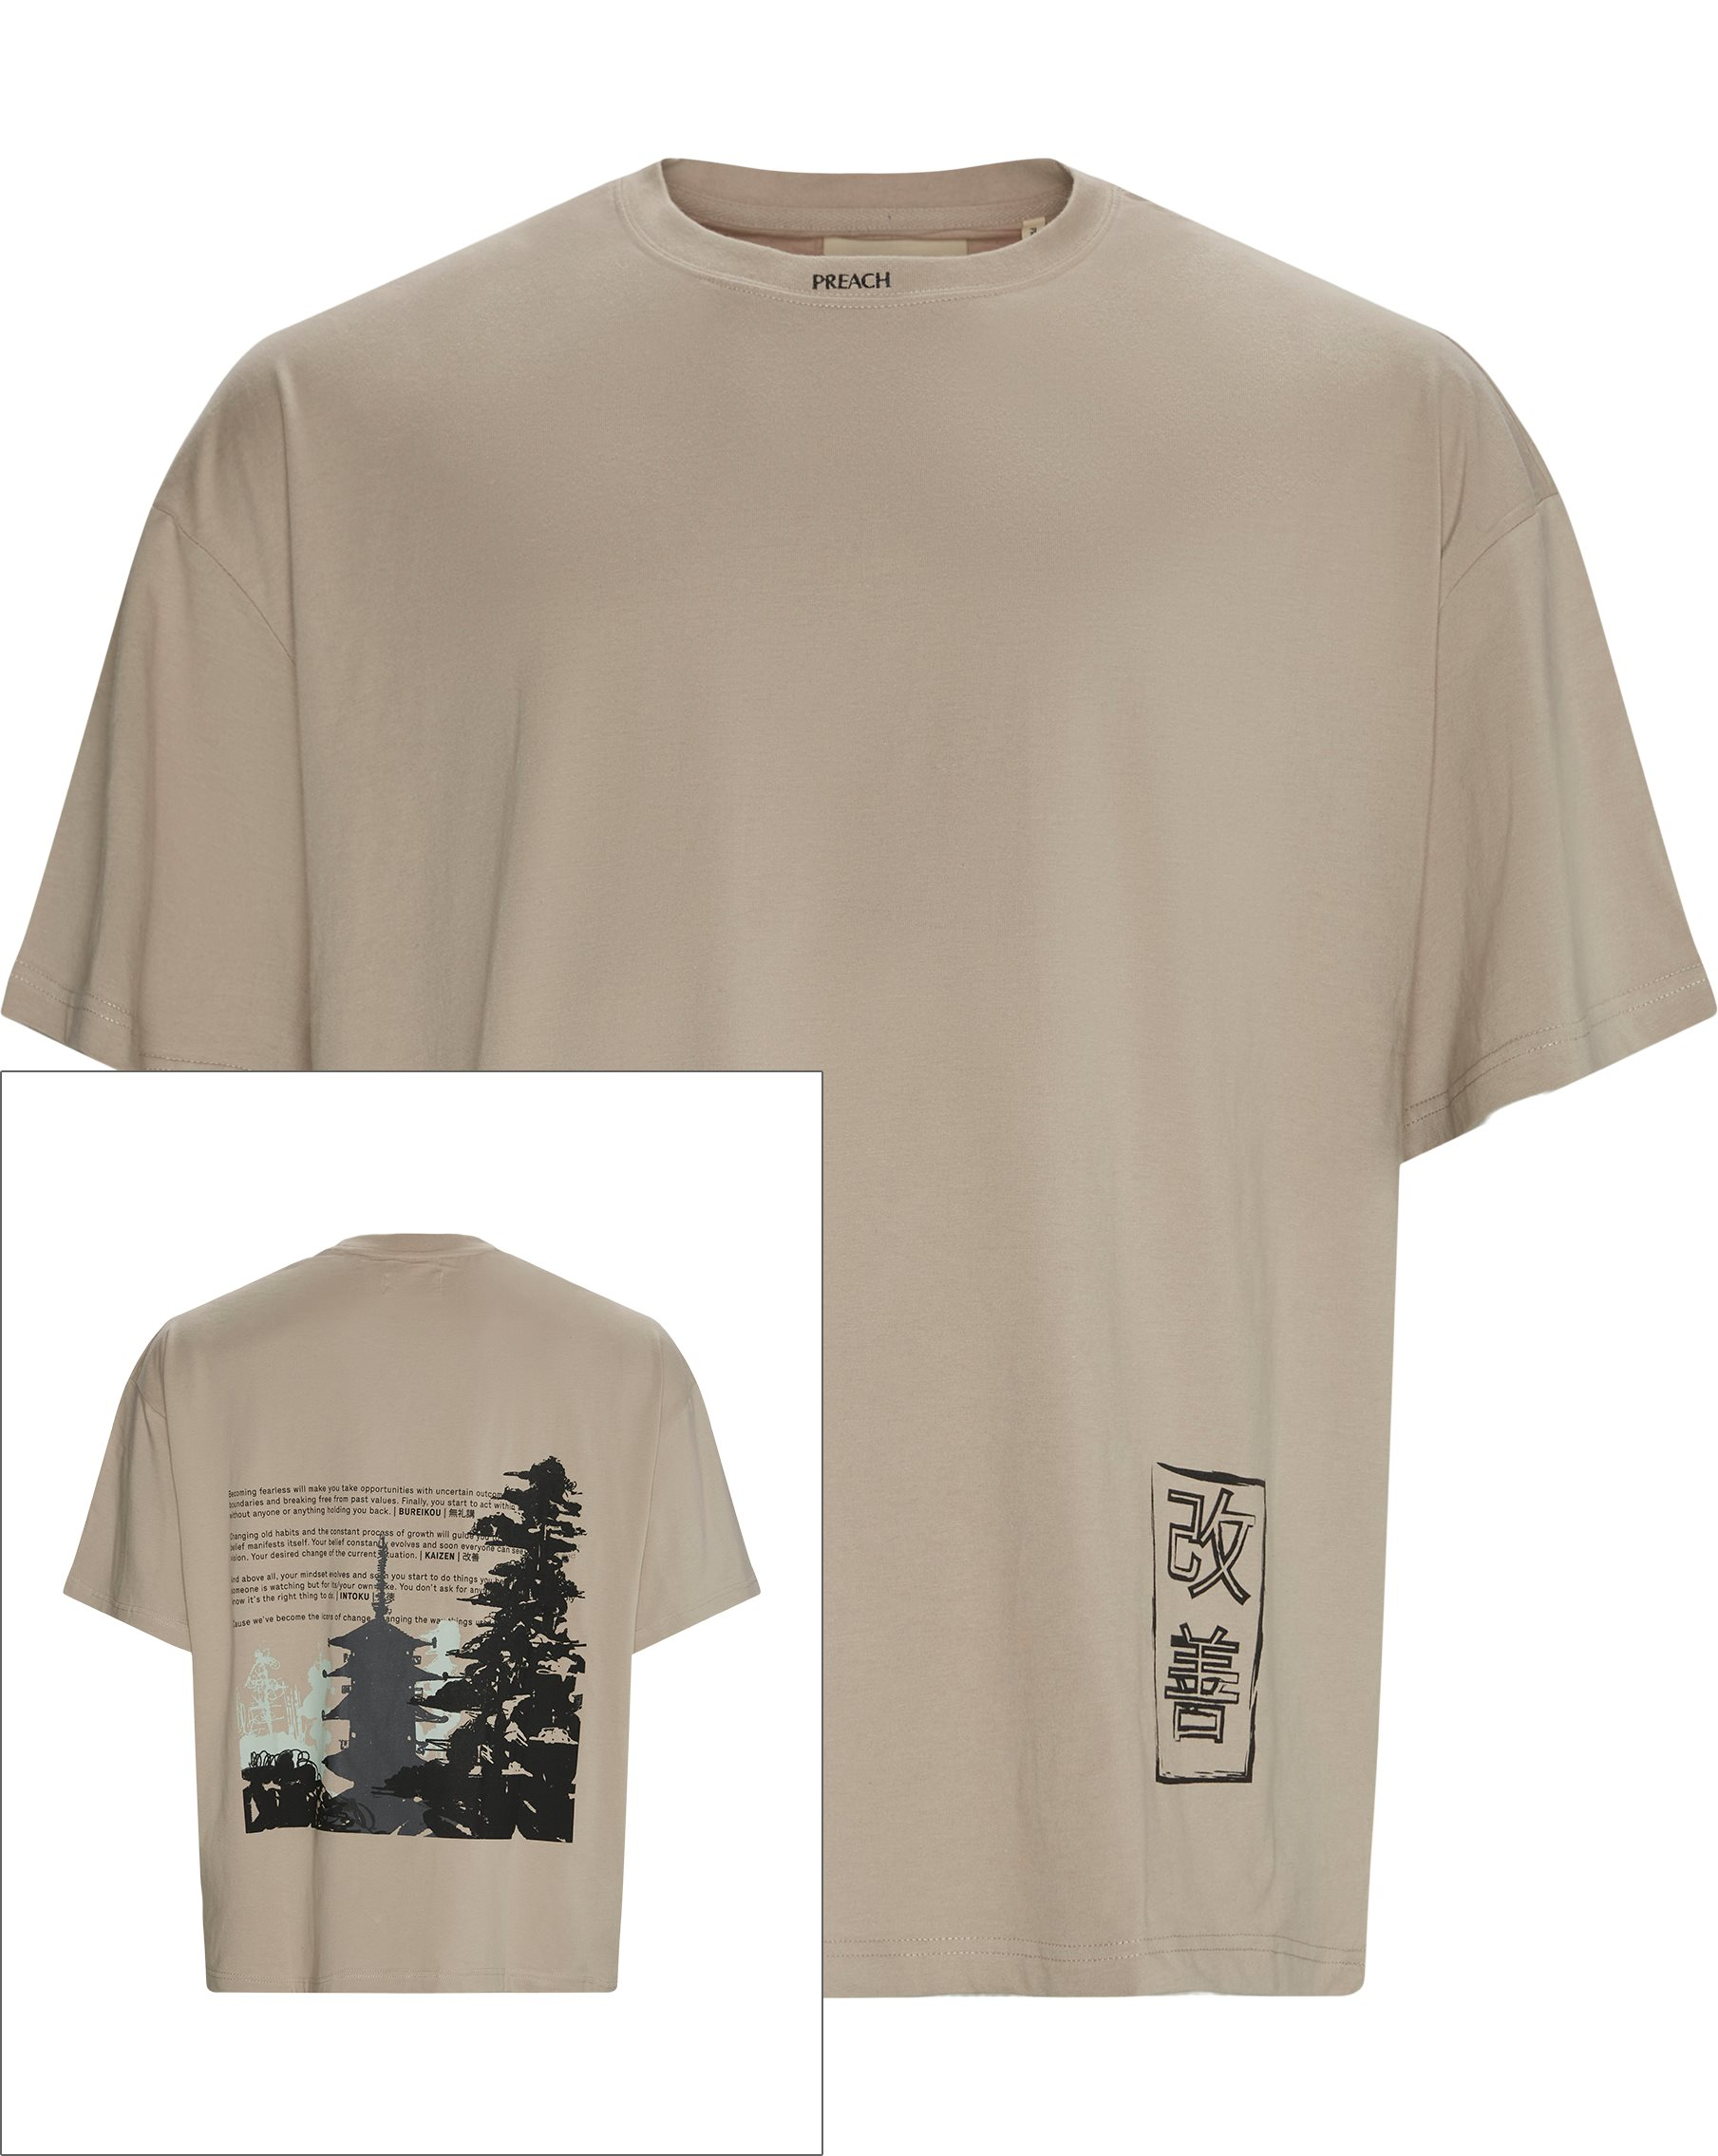 Old Temple Tee - T-shirts - Oversize fit - Sand